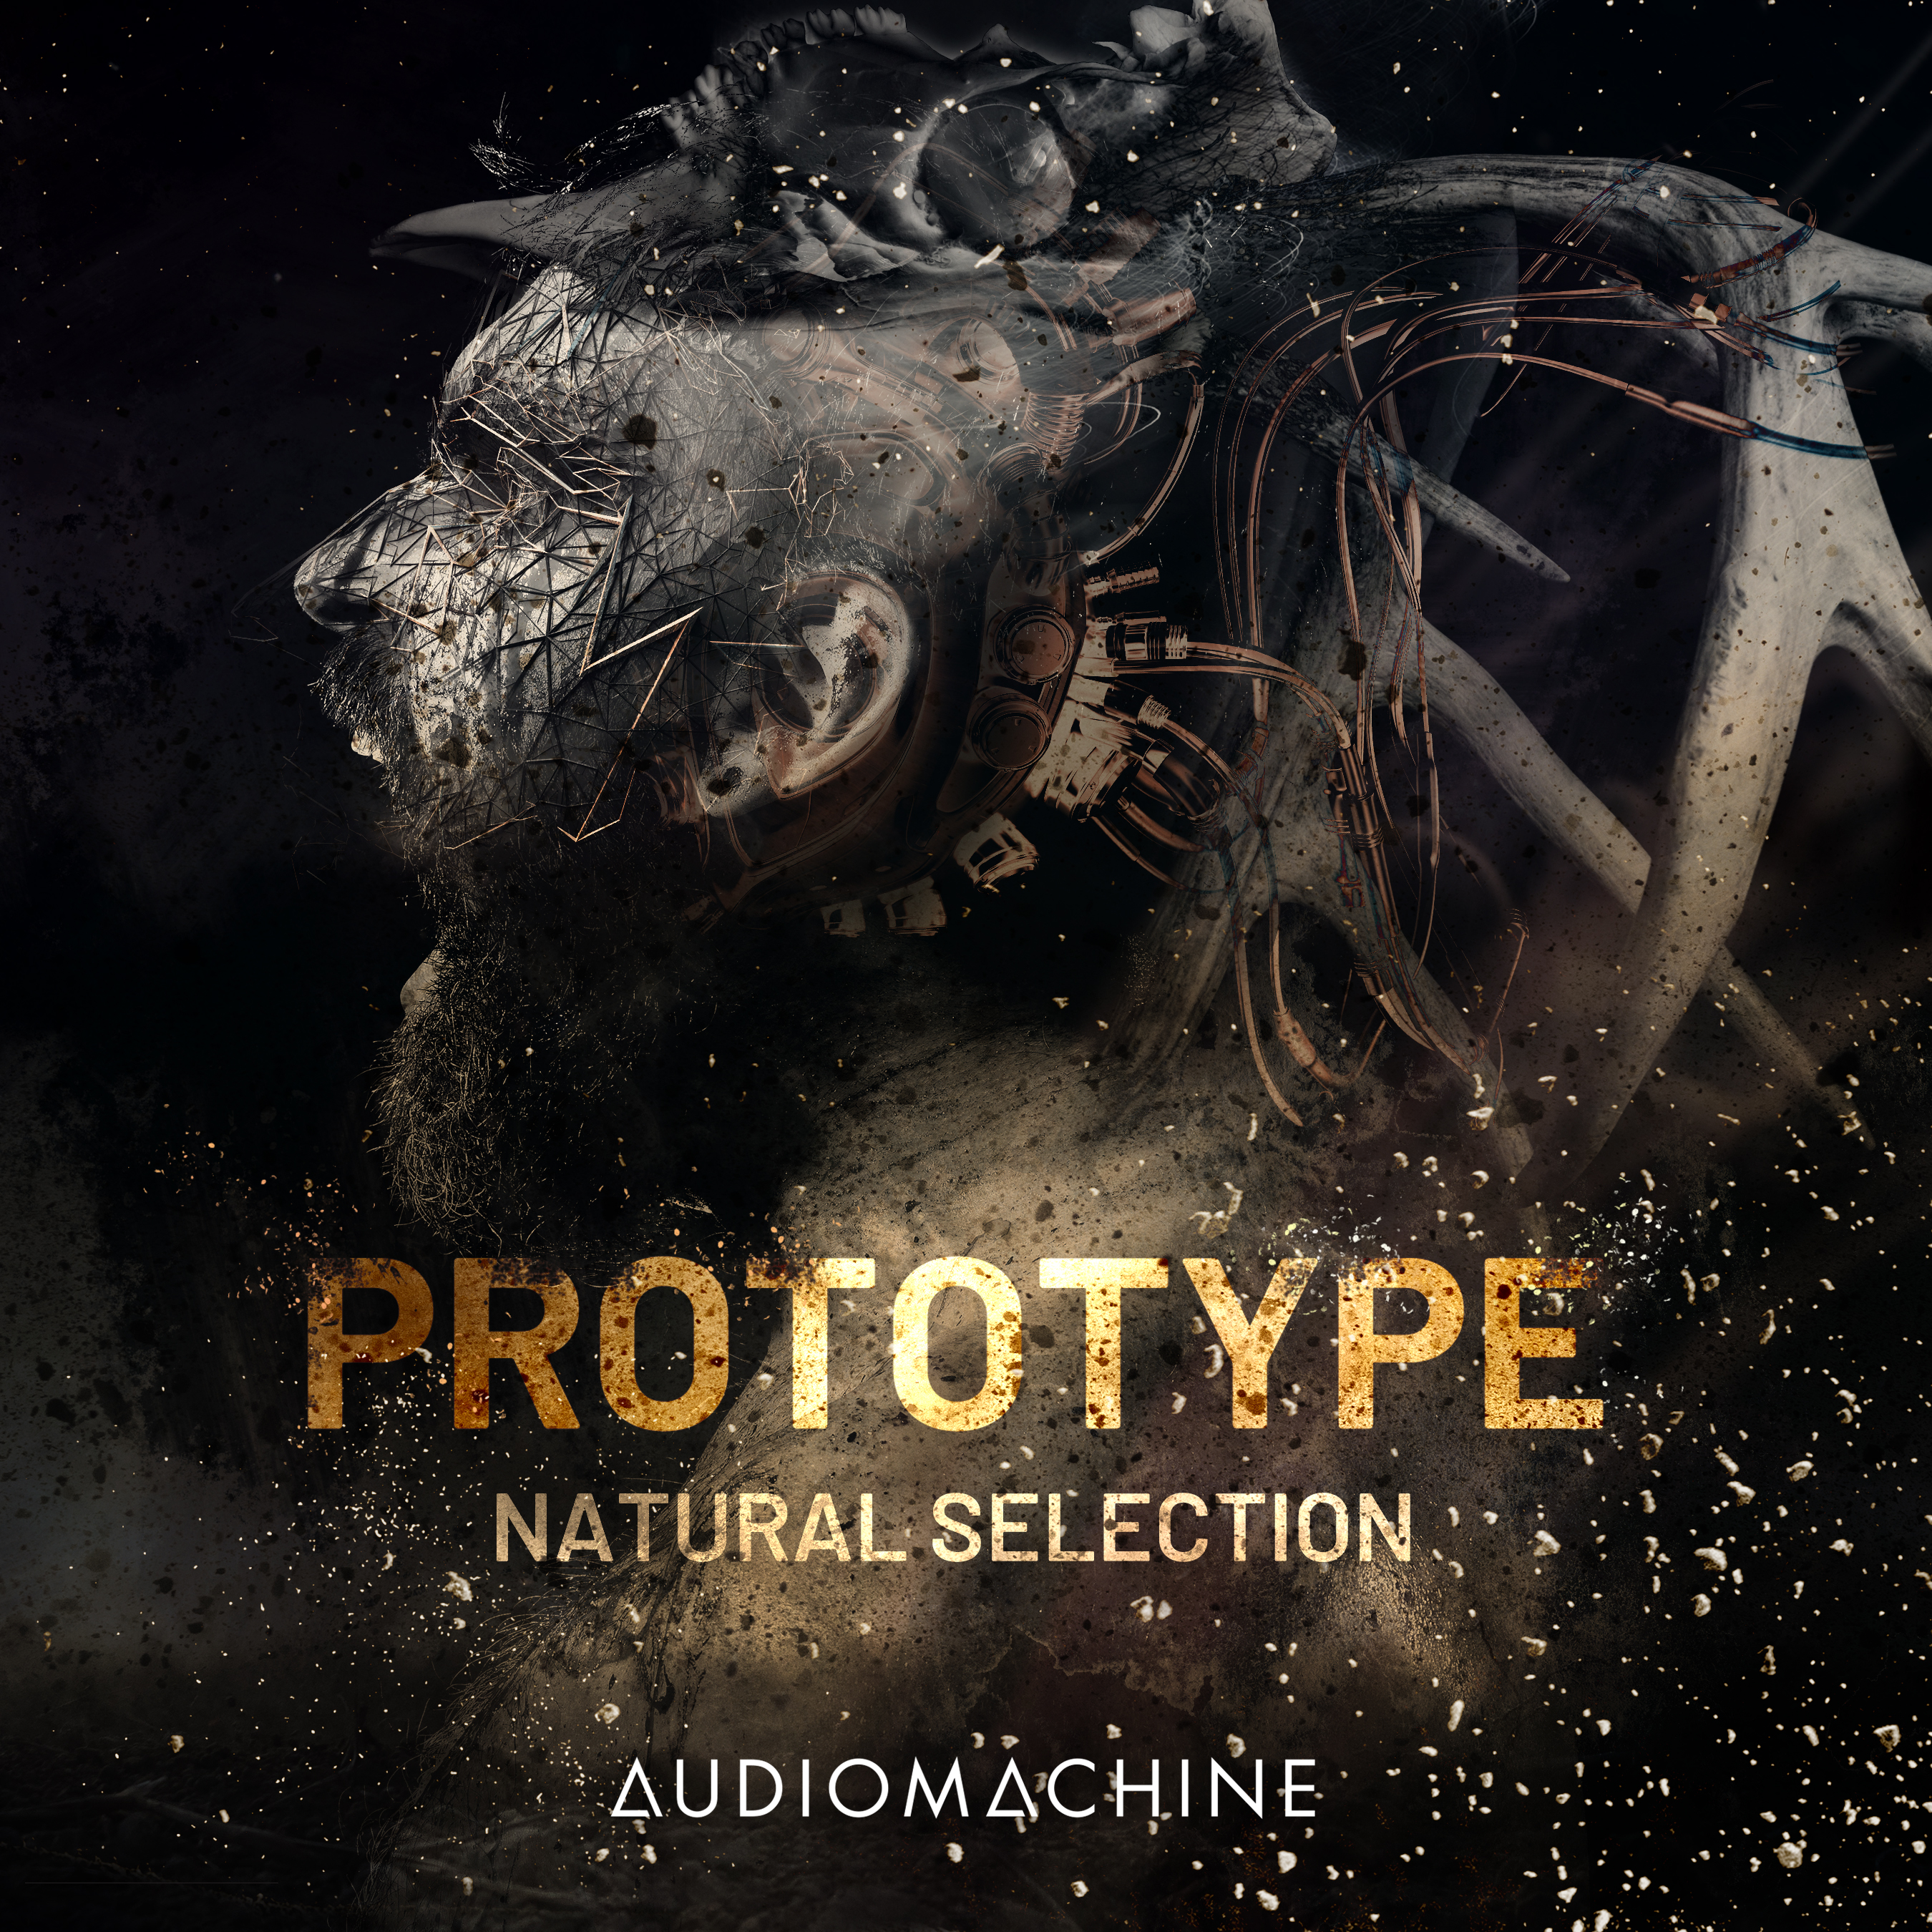 Prototype: Natural Selection